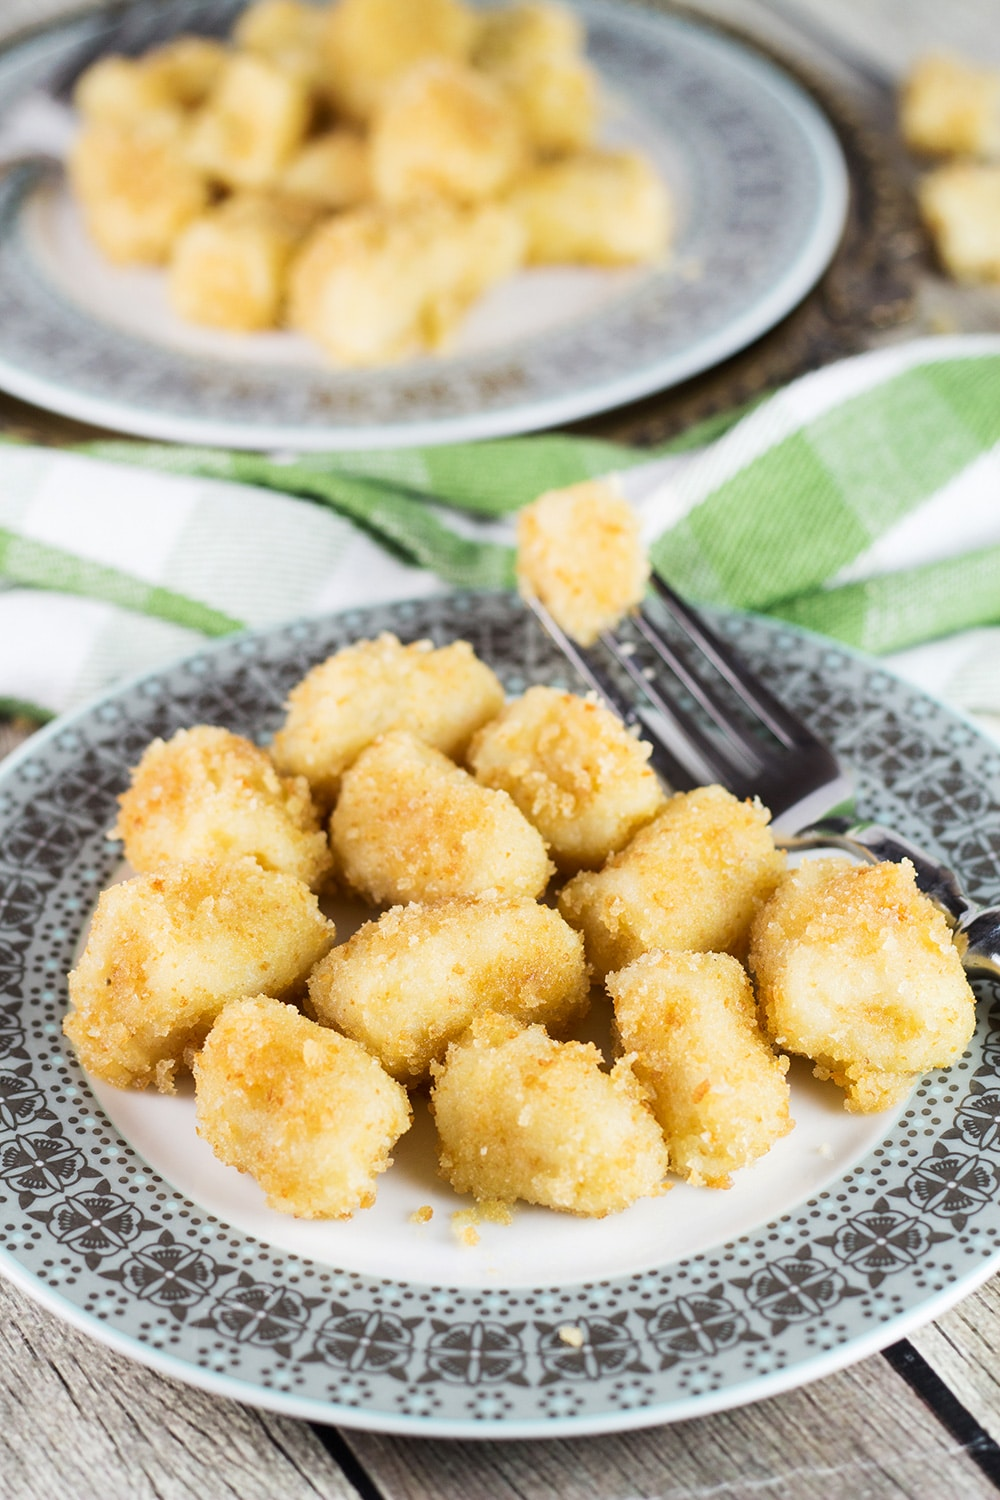 Shlishkes, or Hungarian Potato Dumplings, is a perfect side dish for everyone. These little guys are made with mashed potatoes and covered in buttered bread crumbs!   cookingtheglobe.com